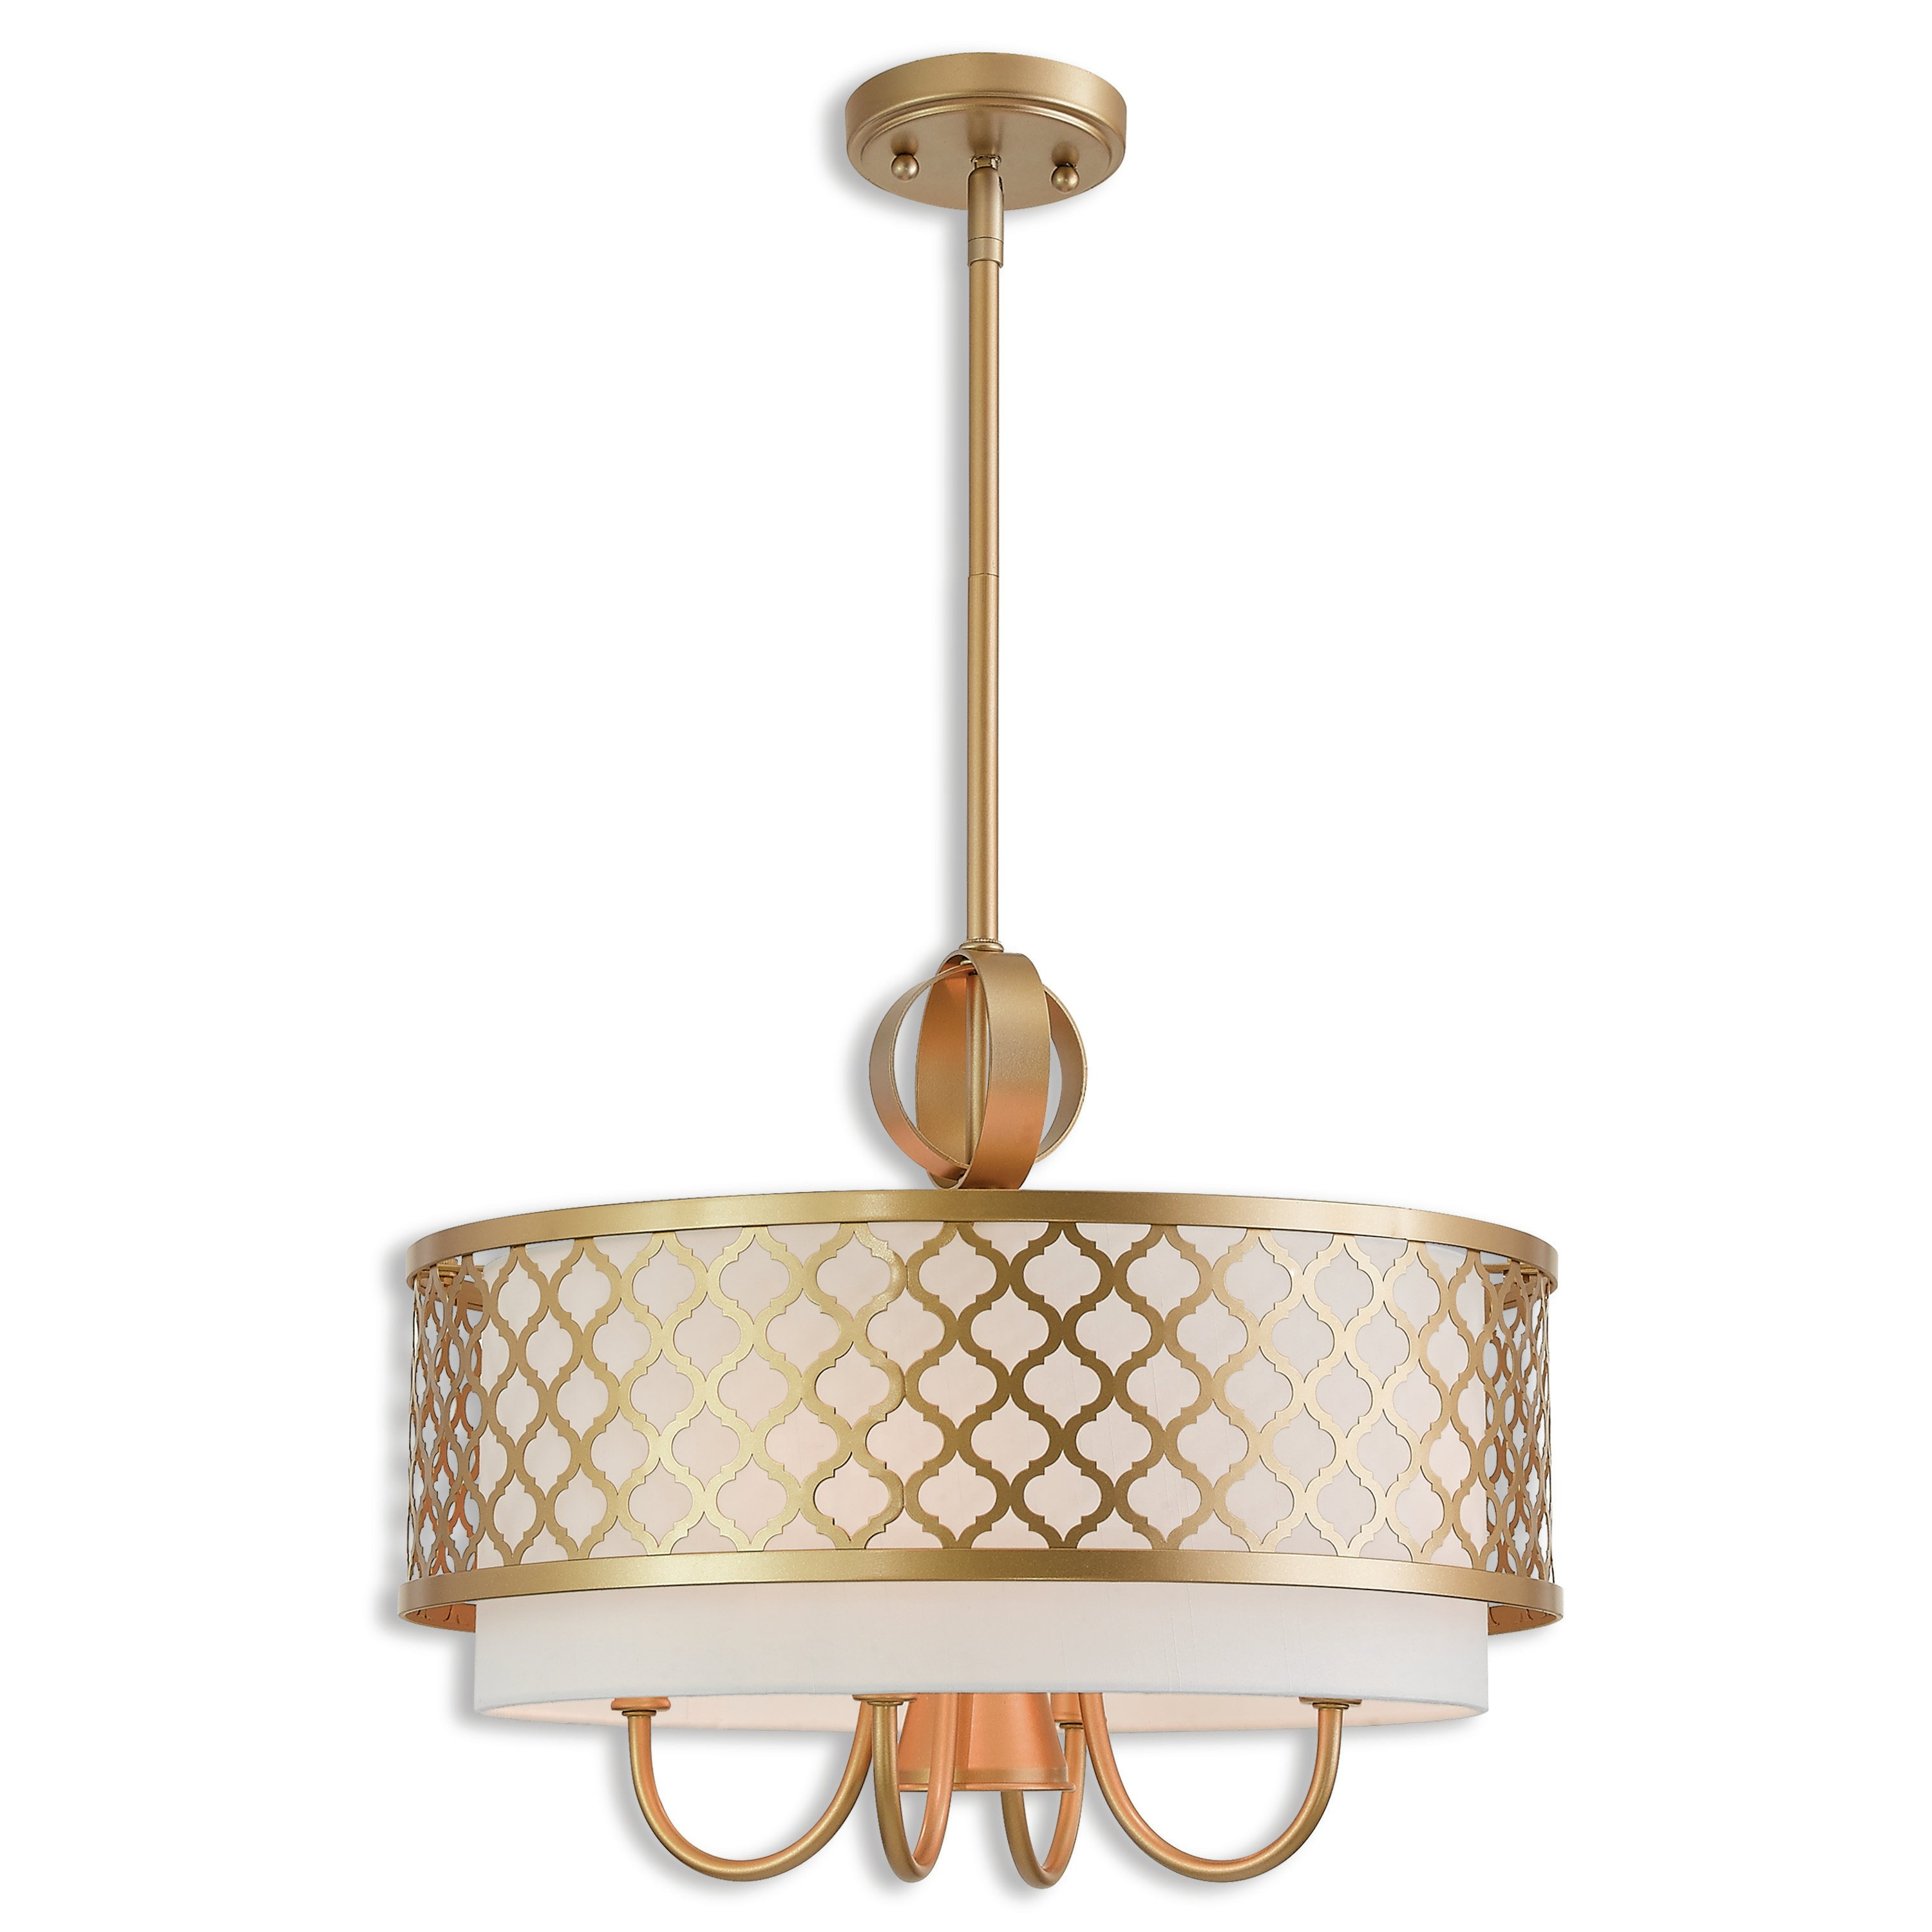 Tymvou 5 Light Drum Chandelier Pertaining To Fashionable Hermione 5 Light Drum Chandeliers (View 9 of 20)